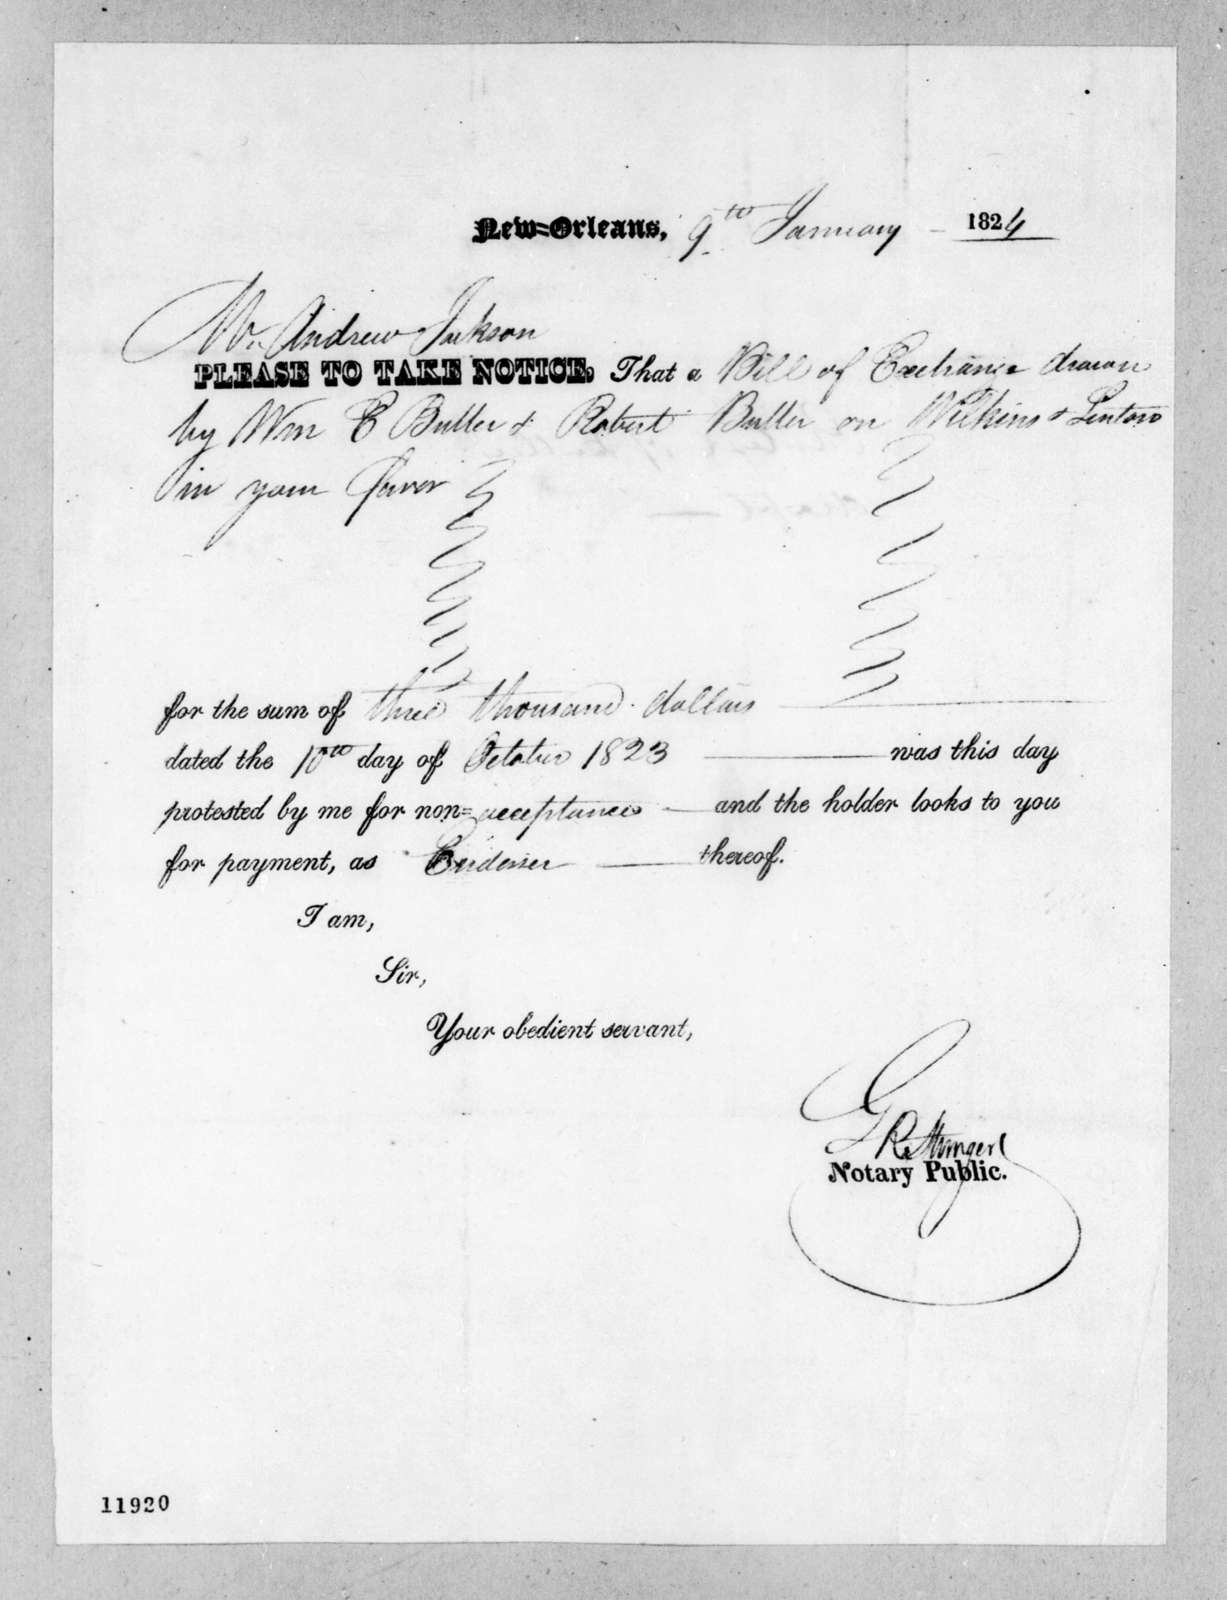 Greenbury Ridgely Stringer to Andrew Jackson, January 9, 1824